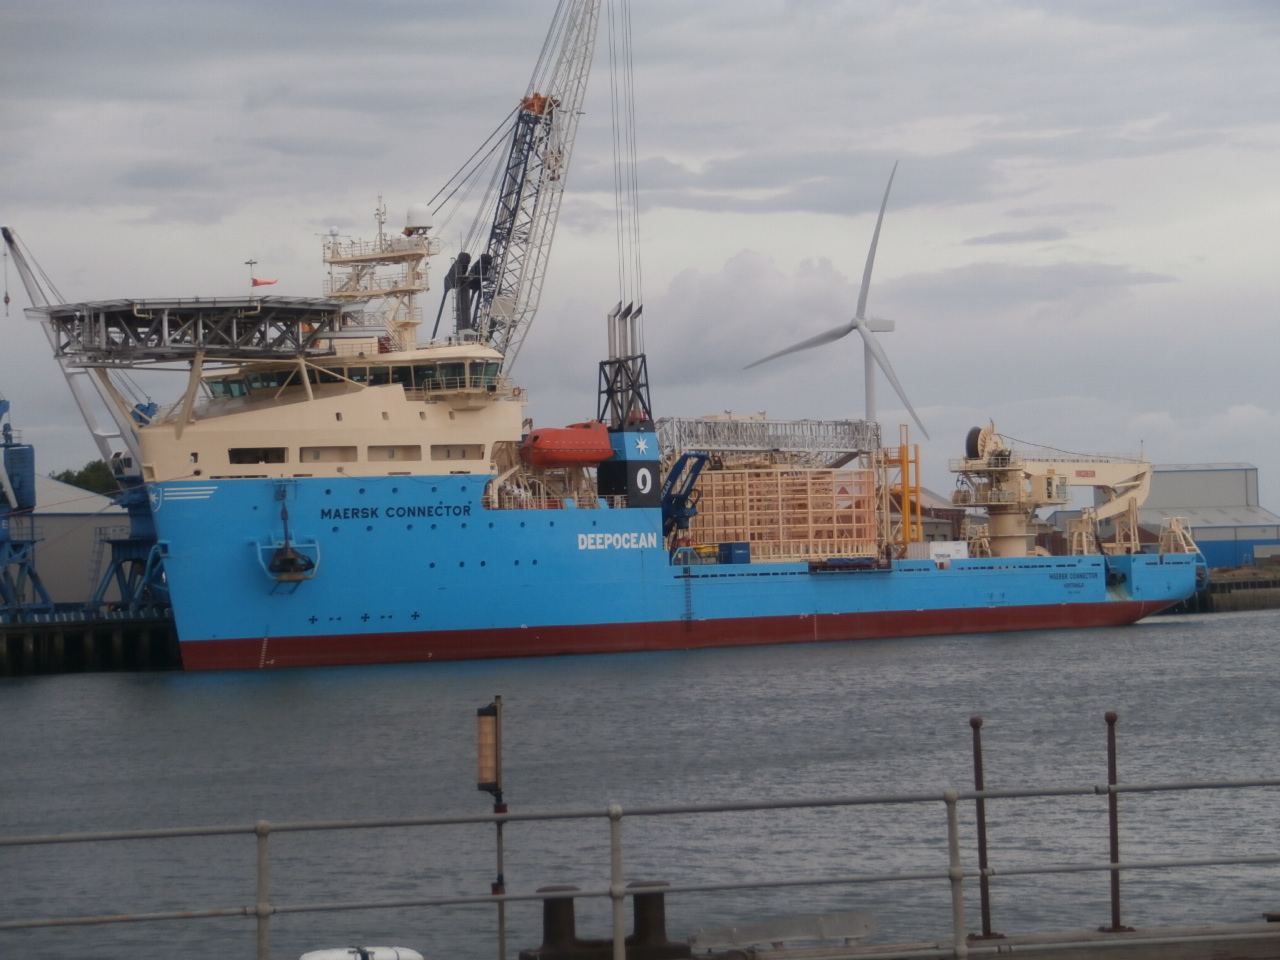 maersk connector s h.JPG